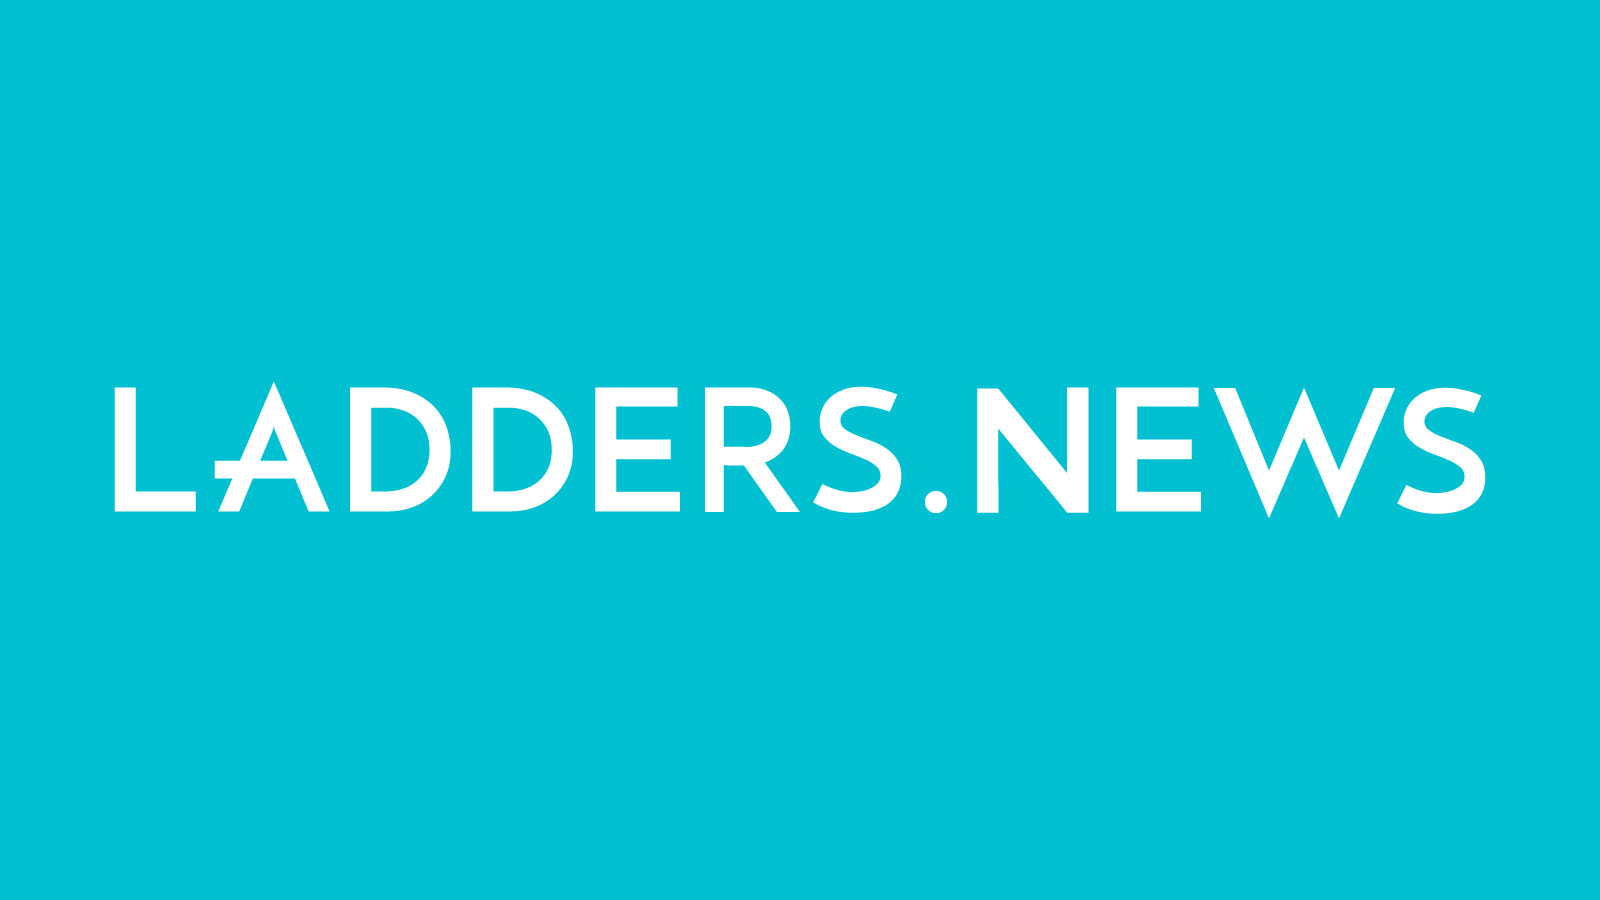 Advertise with Ladders: Share your message with our 10M+ member audience